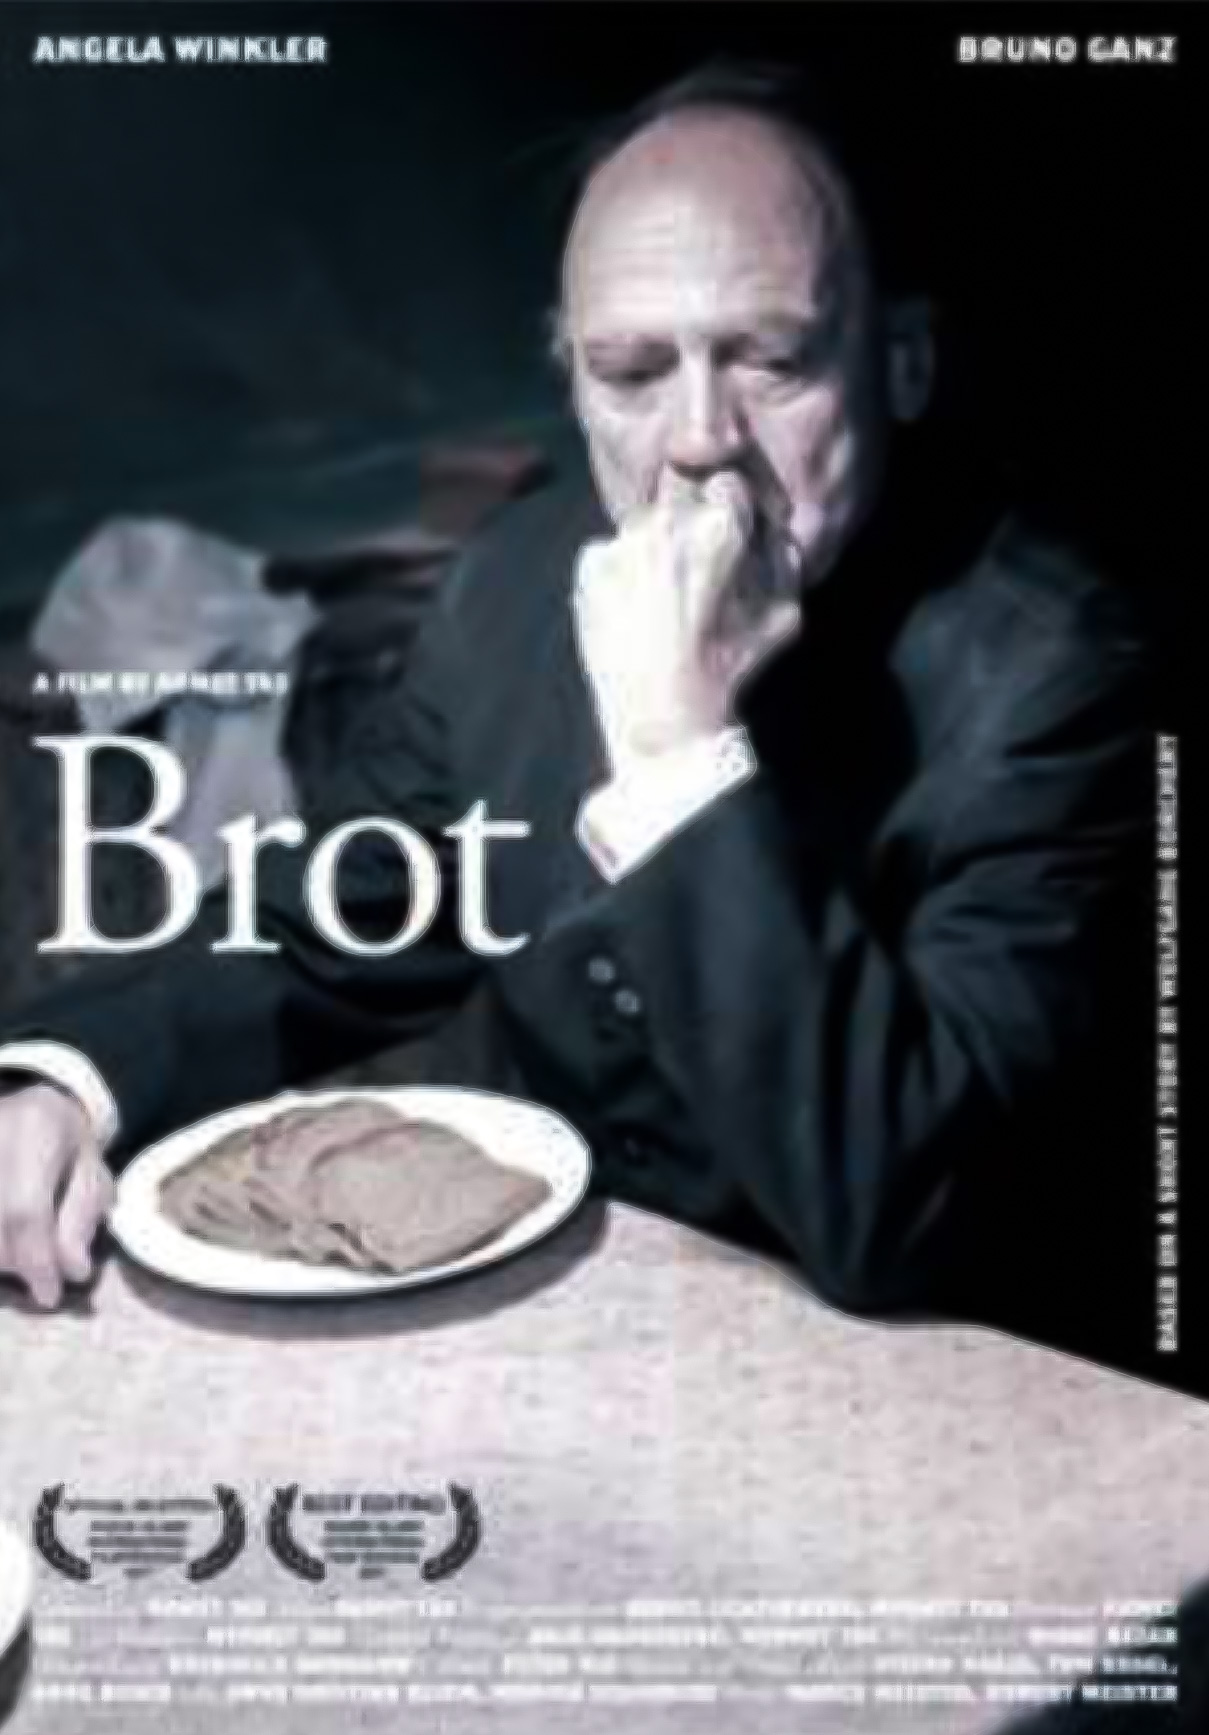 Bruno Ganz - the lord of the ring best actor in Germany 86